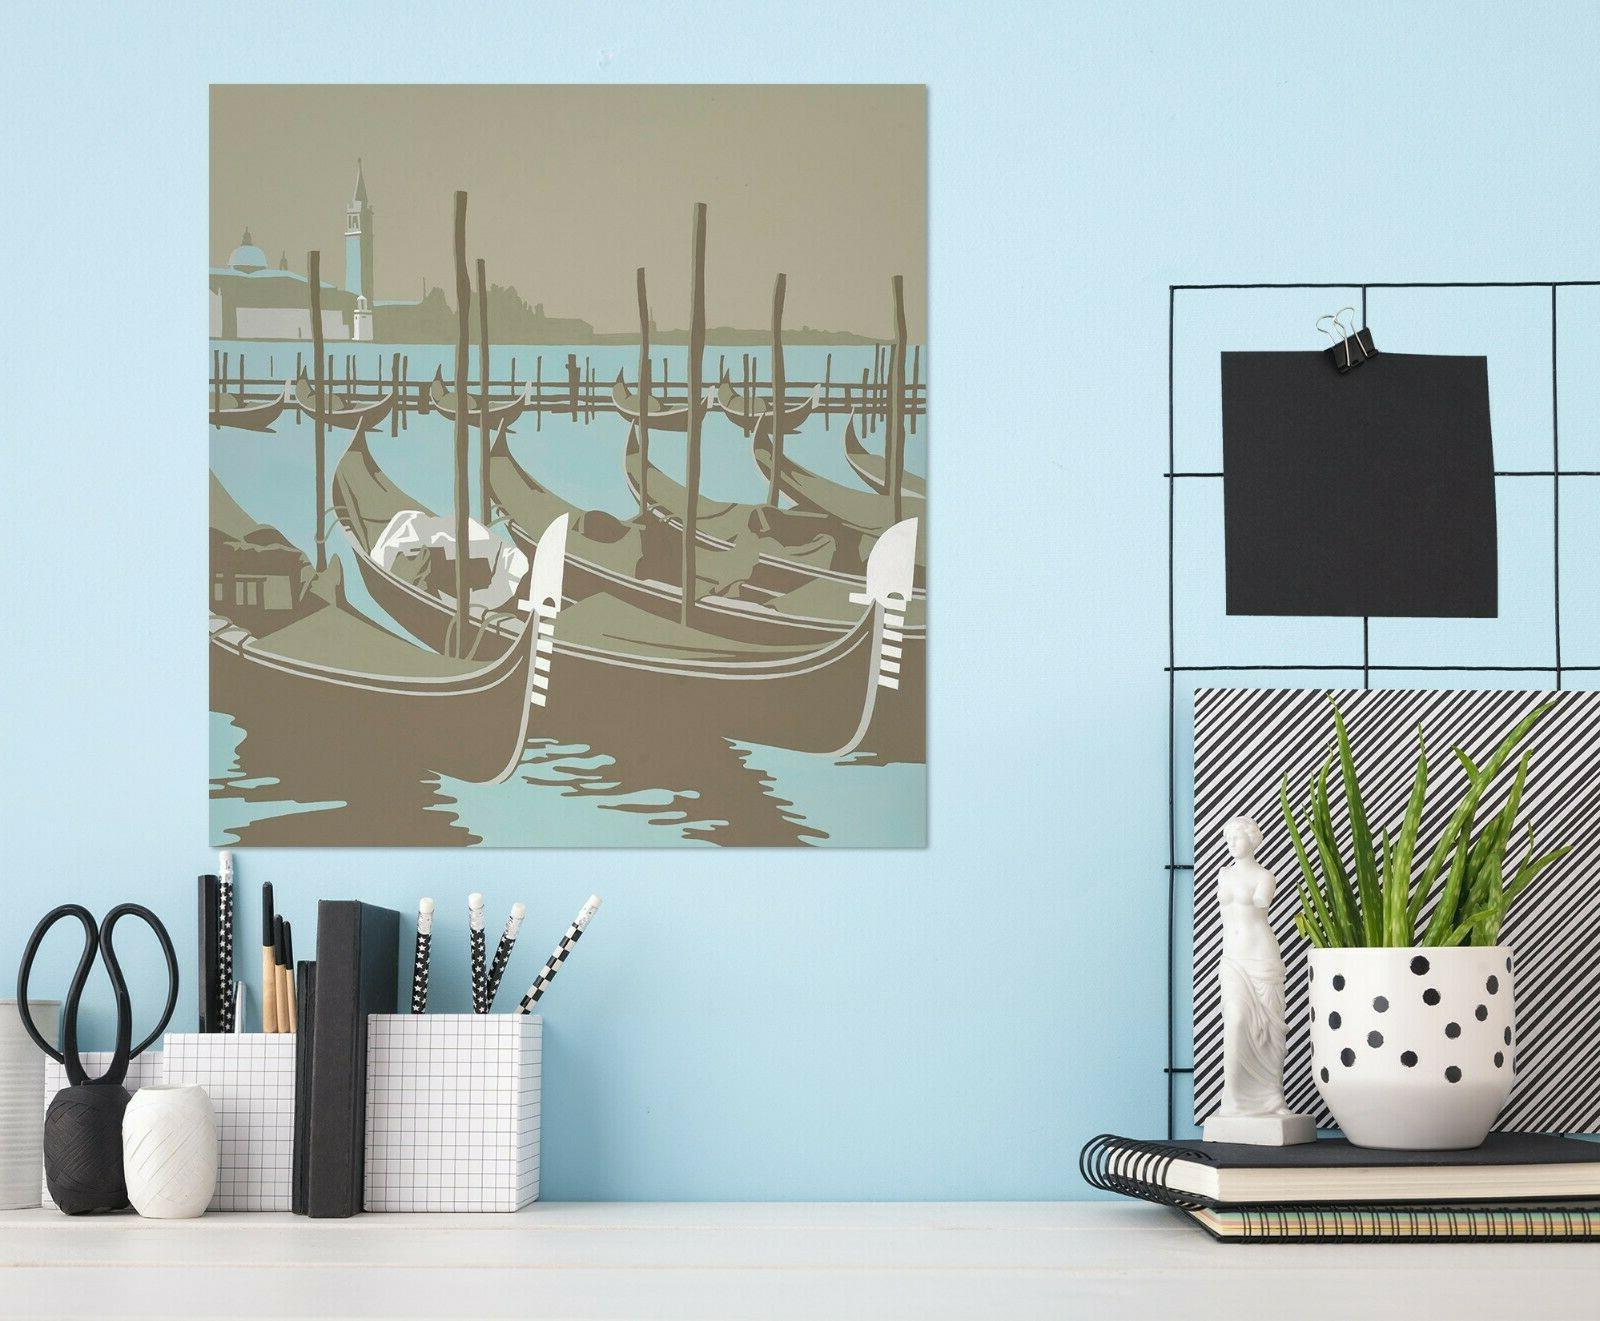 3D Fishing Wall Stickers Mural Decals